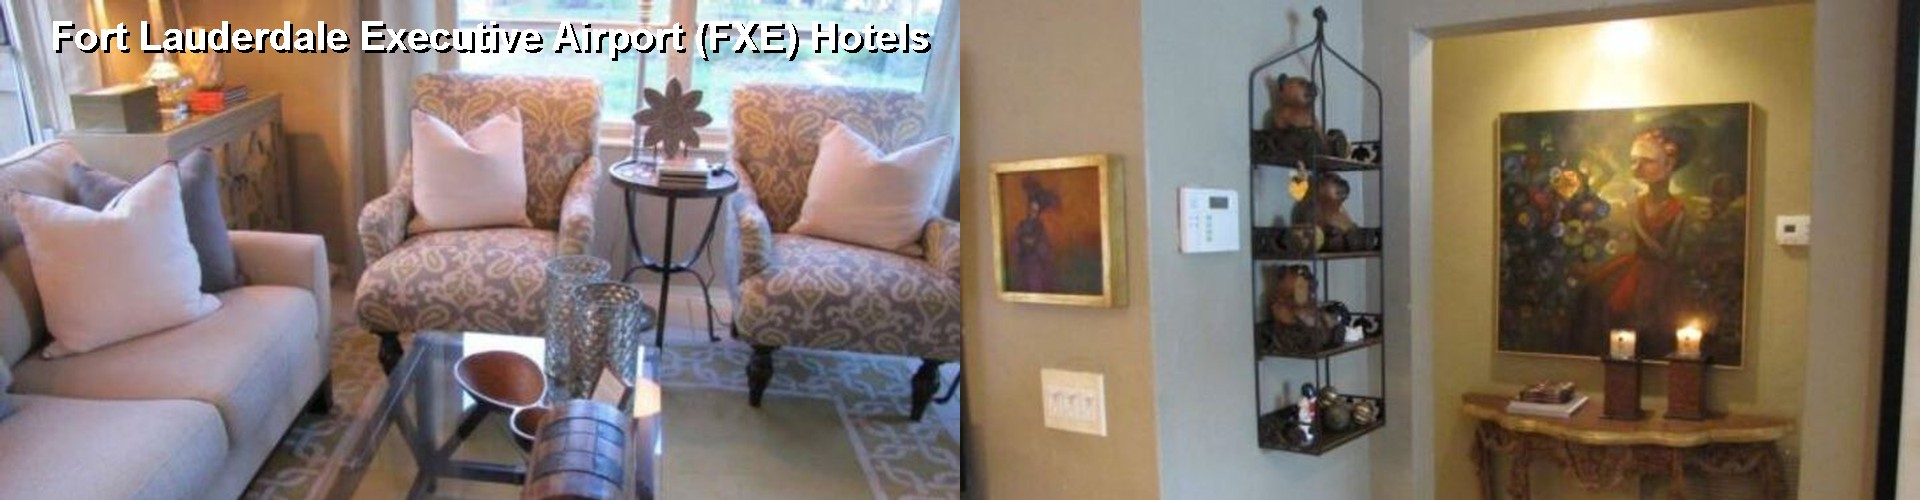 5 Best Hotels Near Fort Lauderdale Executive Airport Fxe